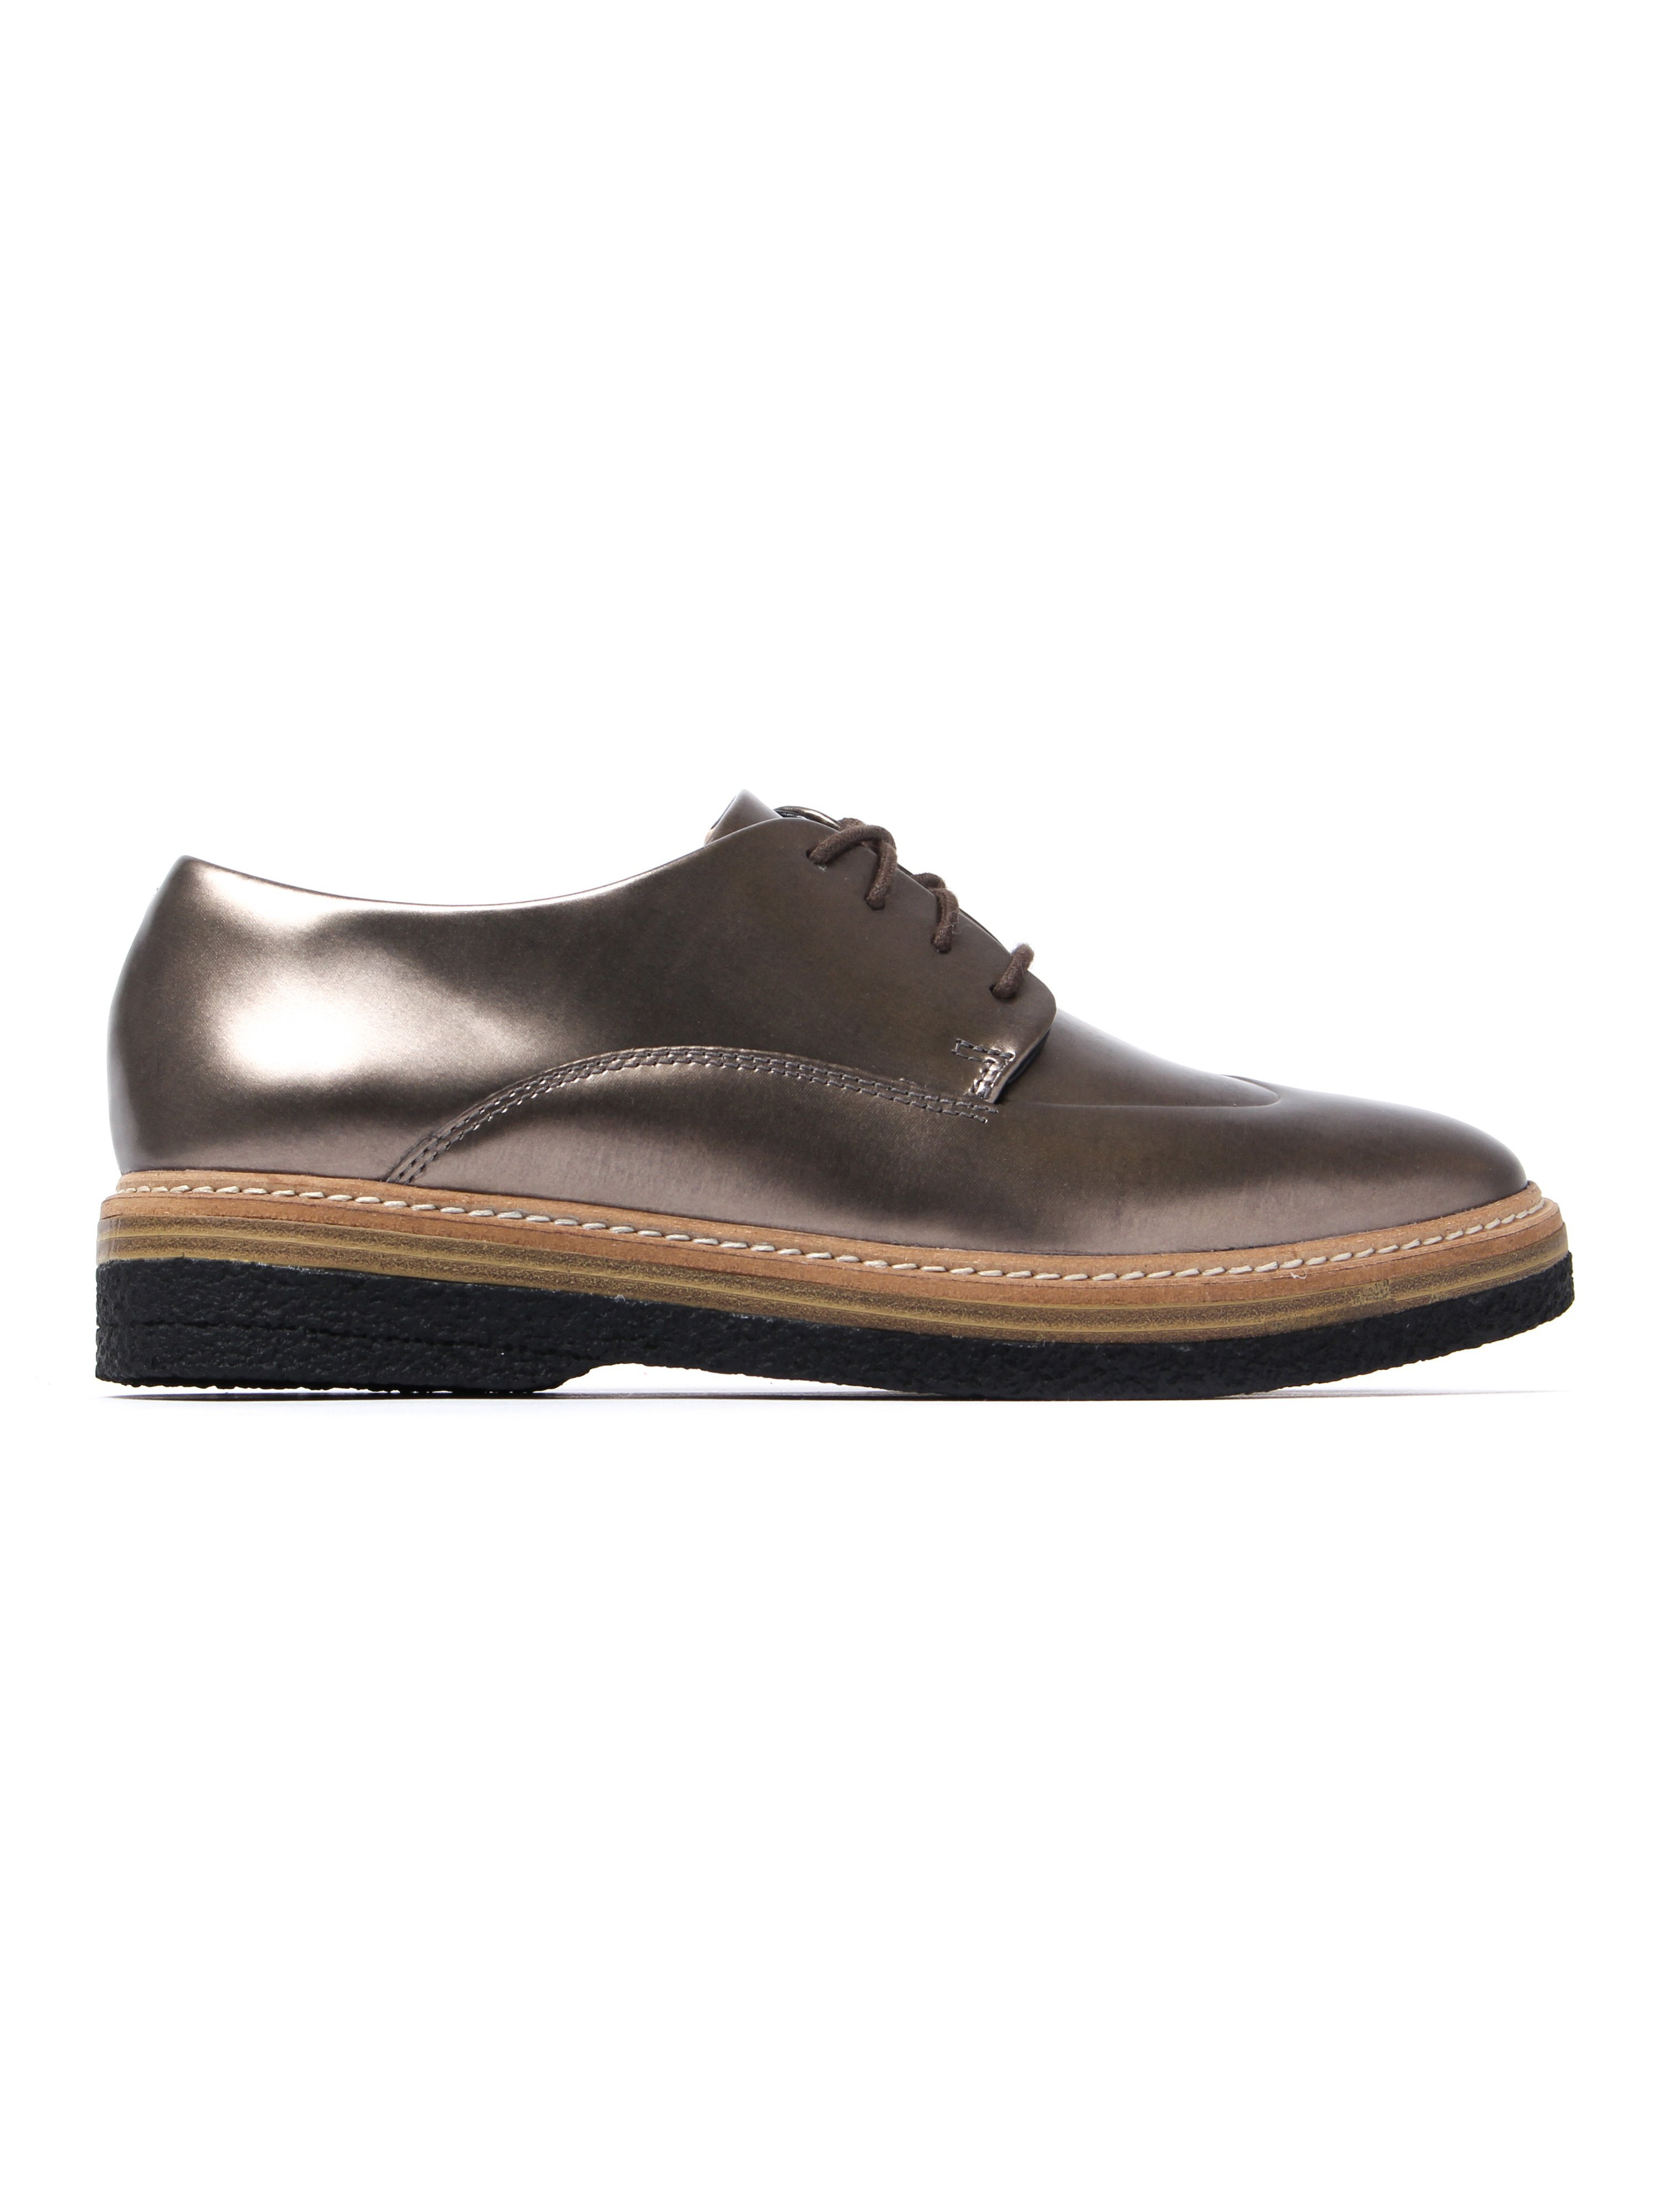 Clarks Women's Zante Zara Metallic Brogues - Pewter Leather